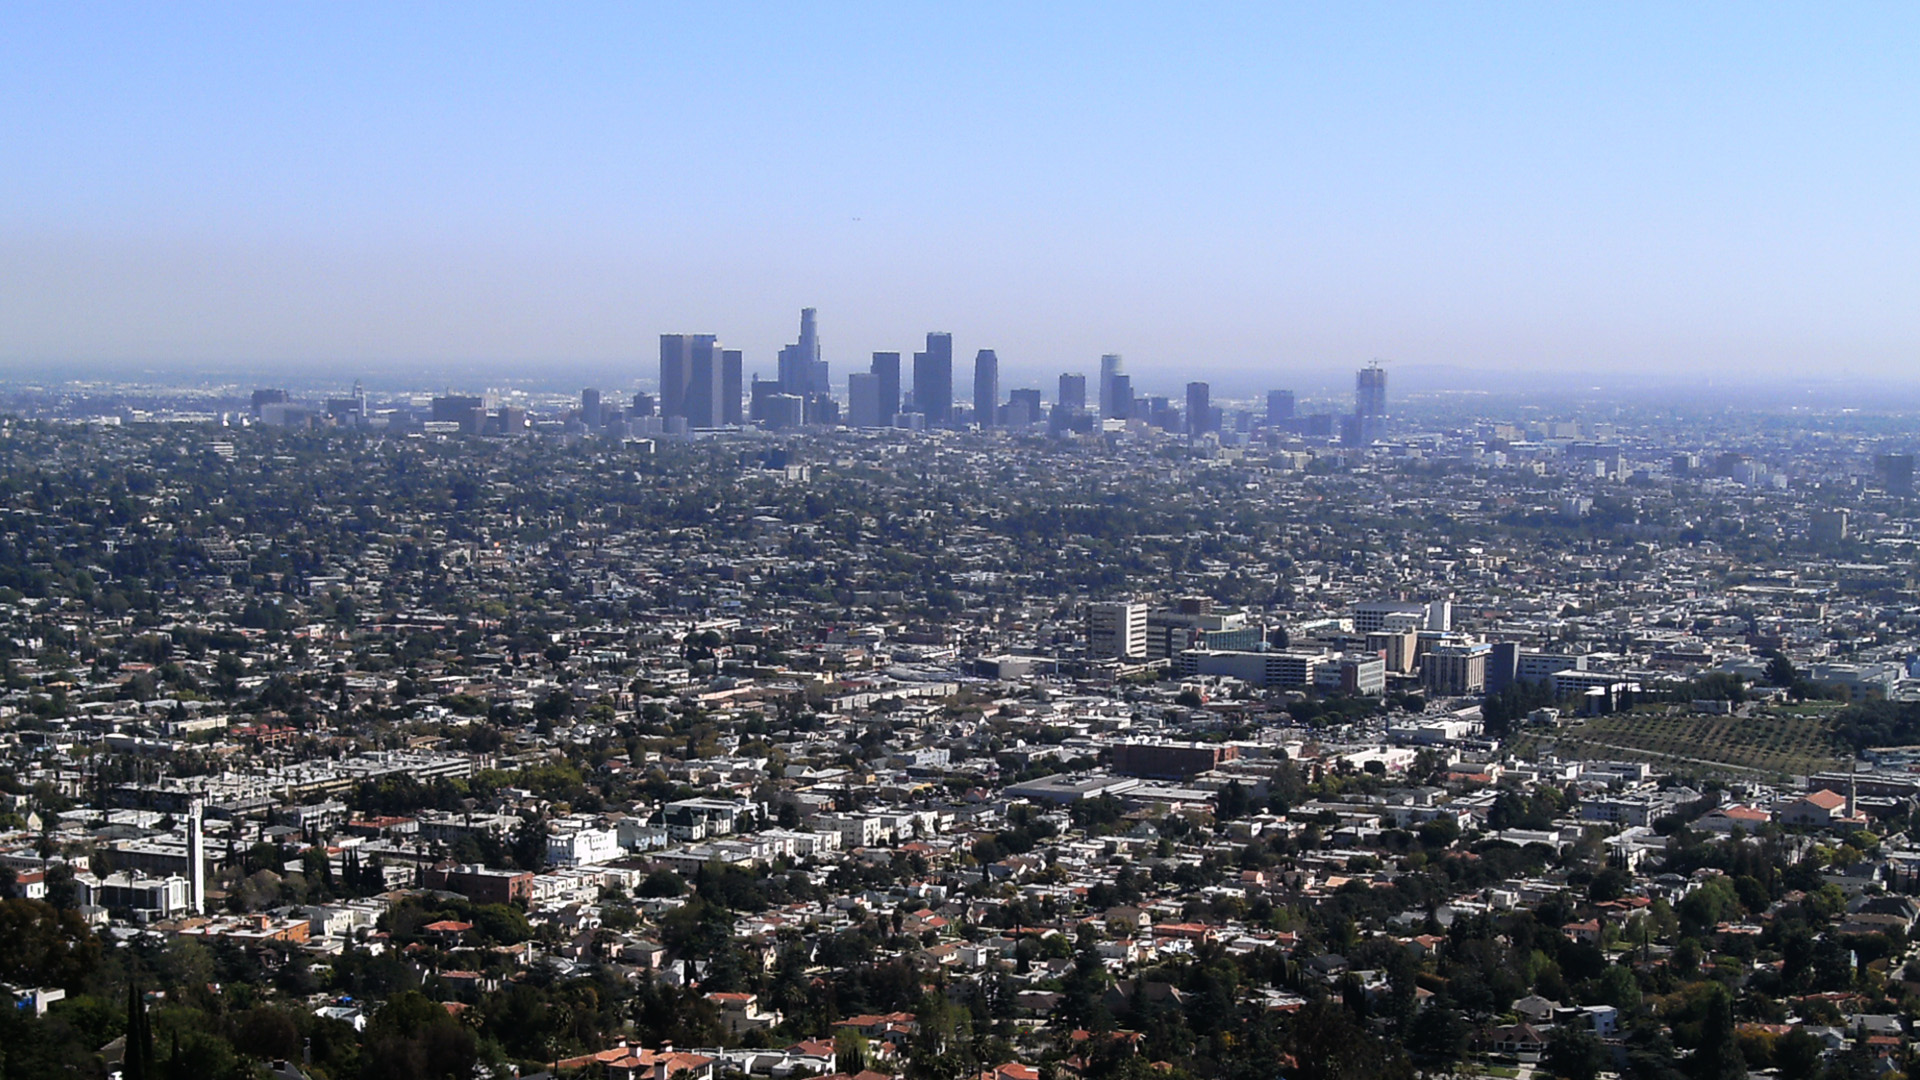 Los Angeles Wallpapers High Quality Download Free